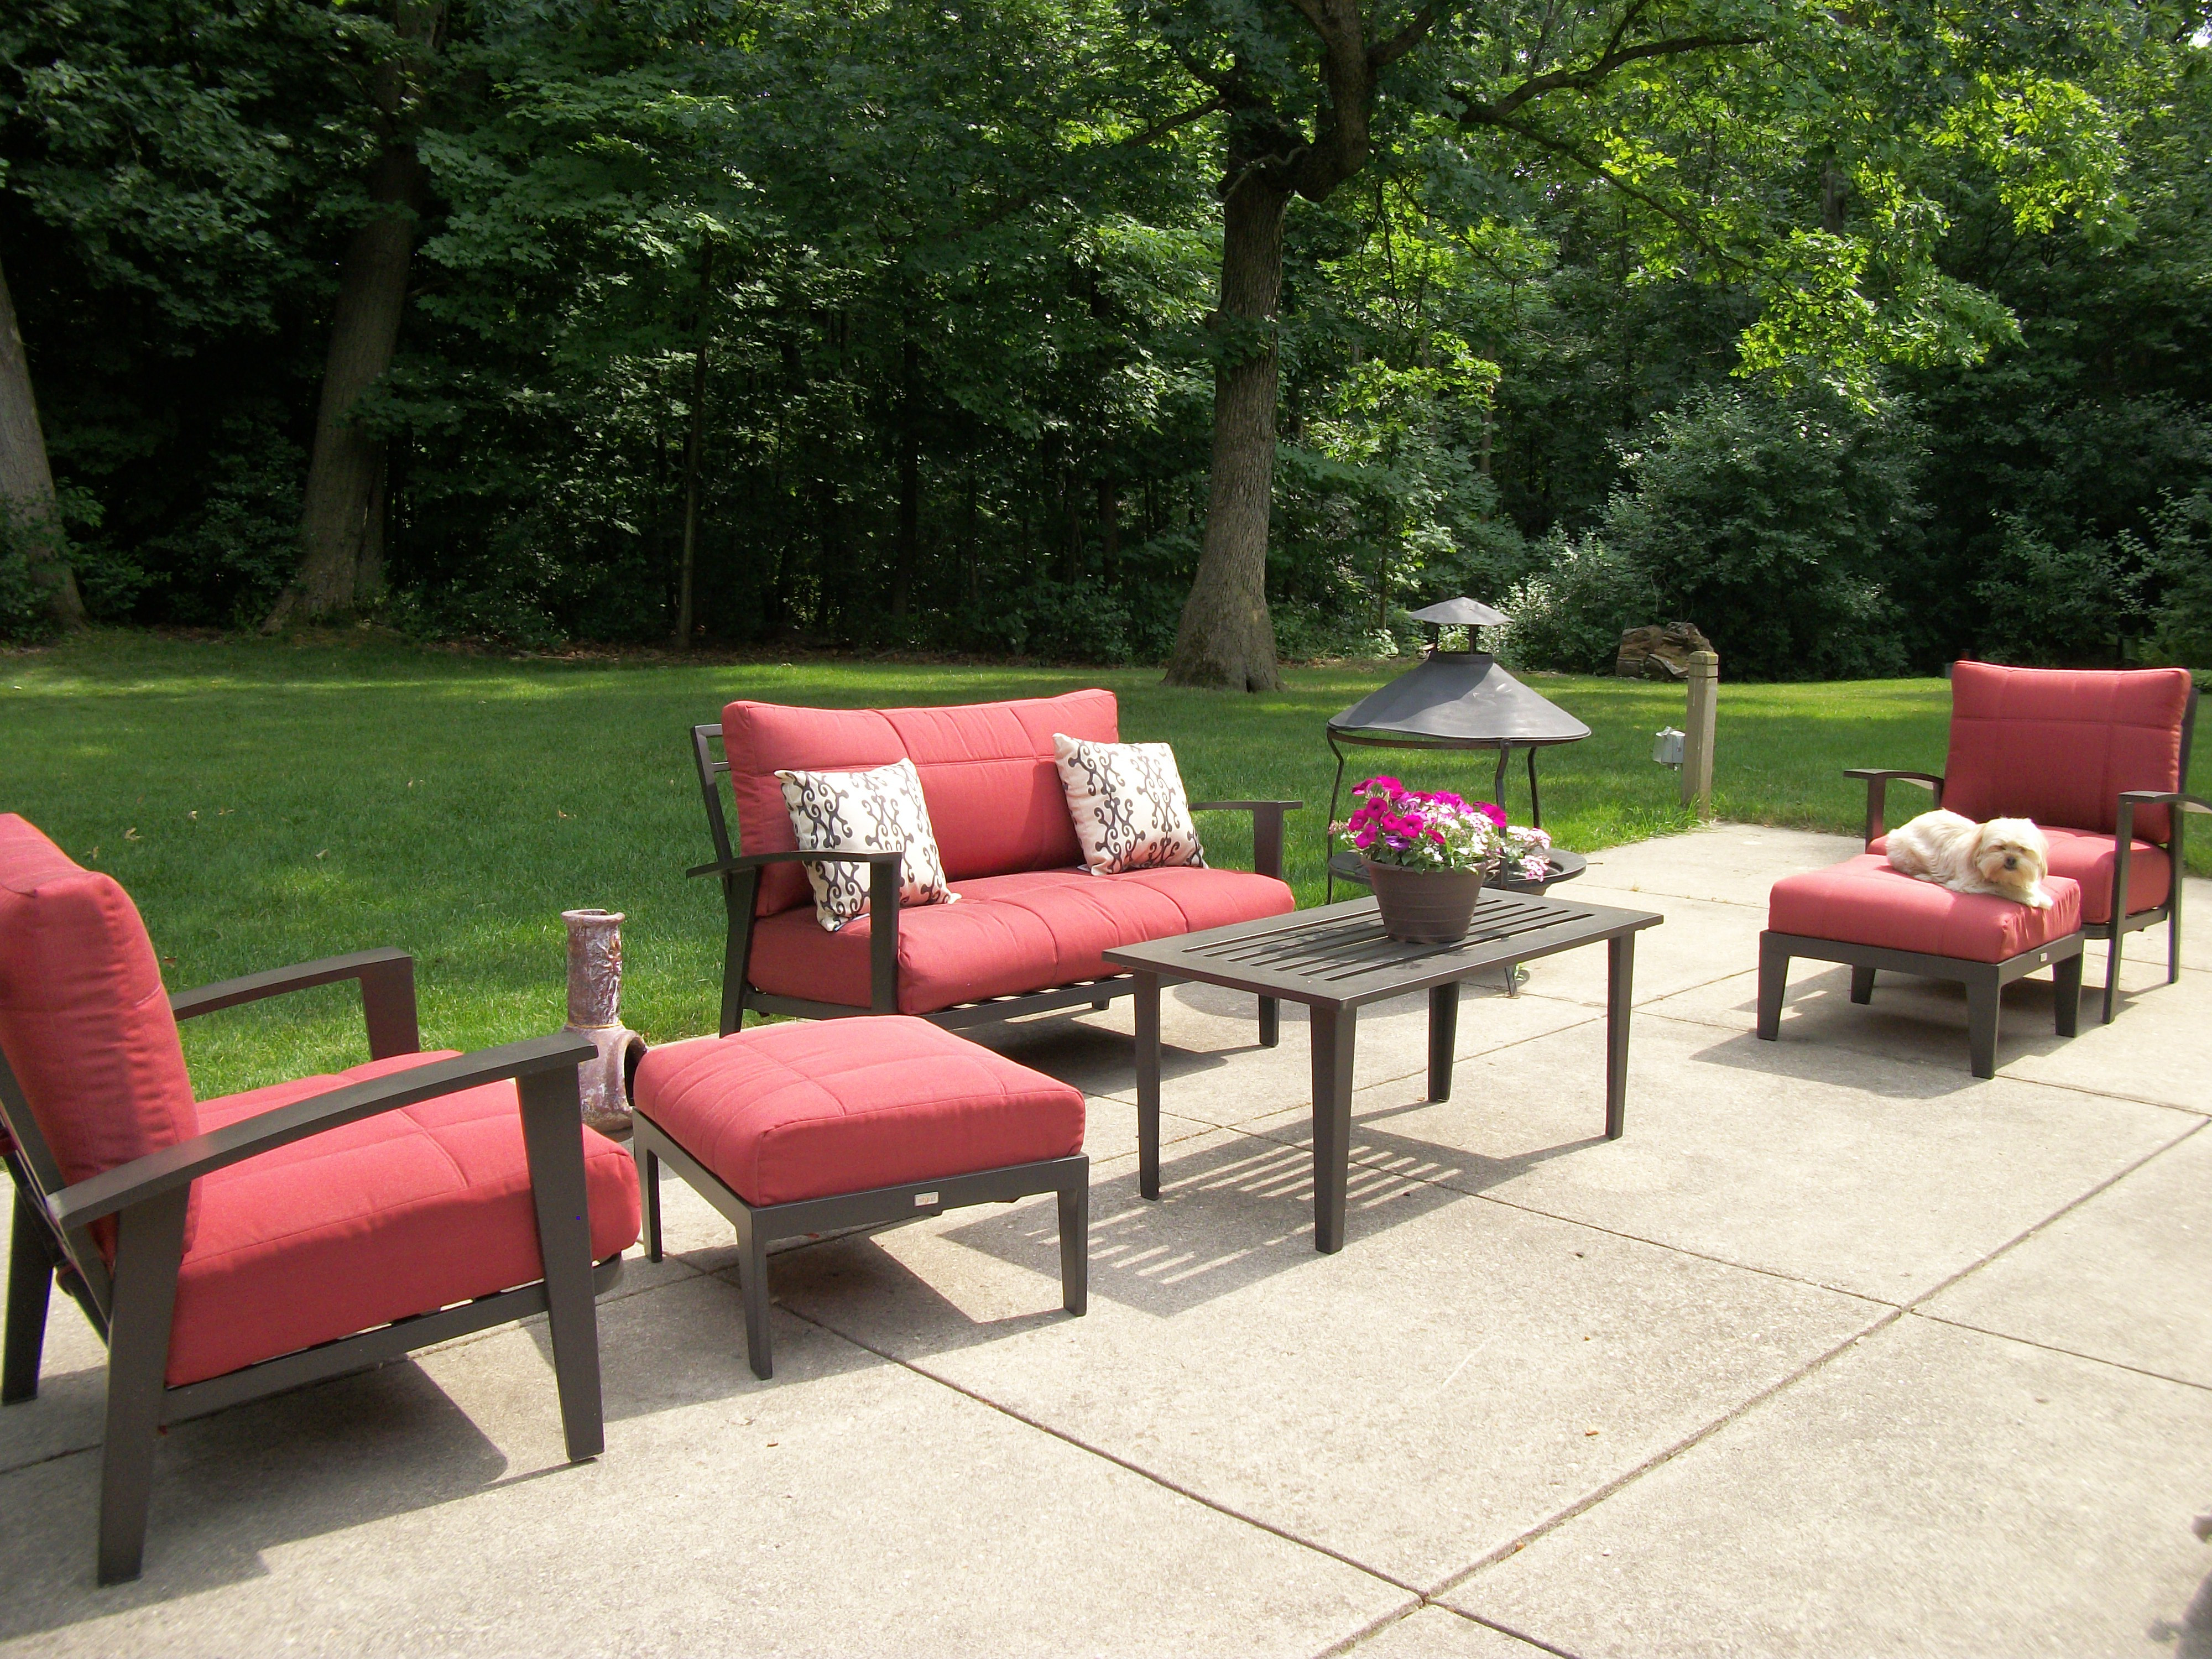 Best ideas about Hampton Bay Patio Cushions . Save or Pin Decking Beauty Hampton Bay Patio Furniture Replacement Now.